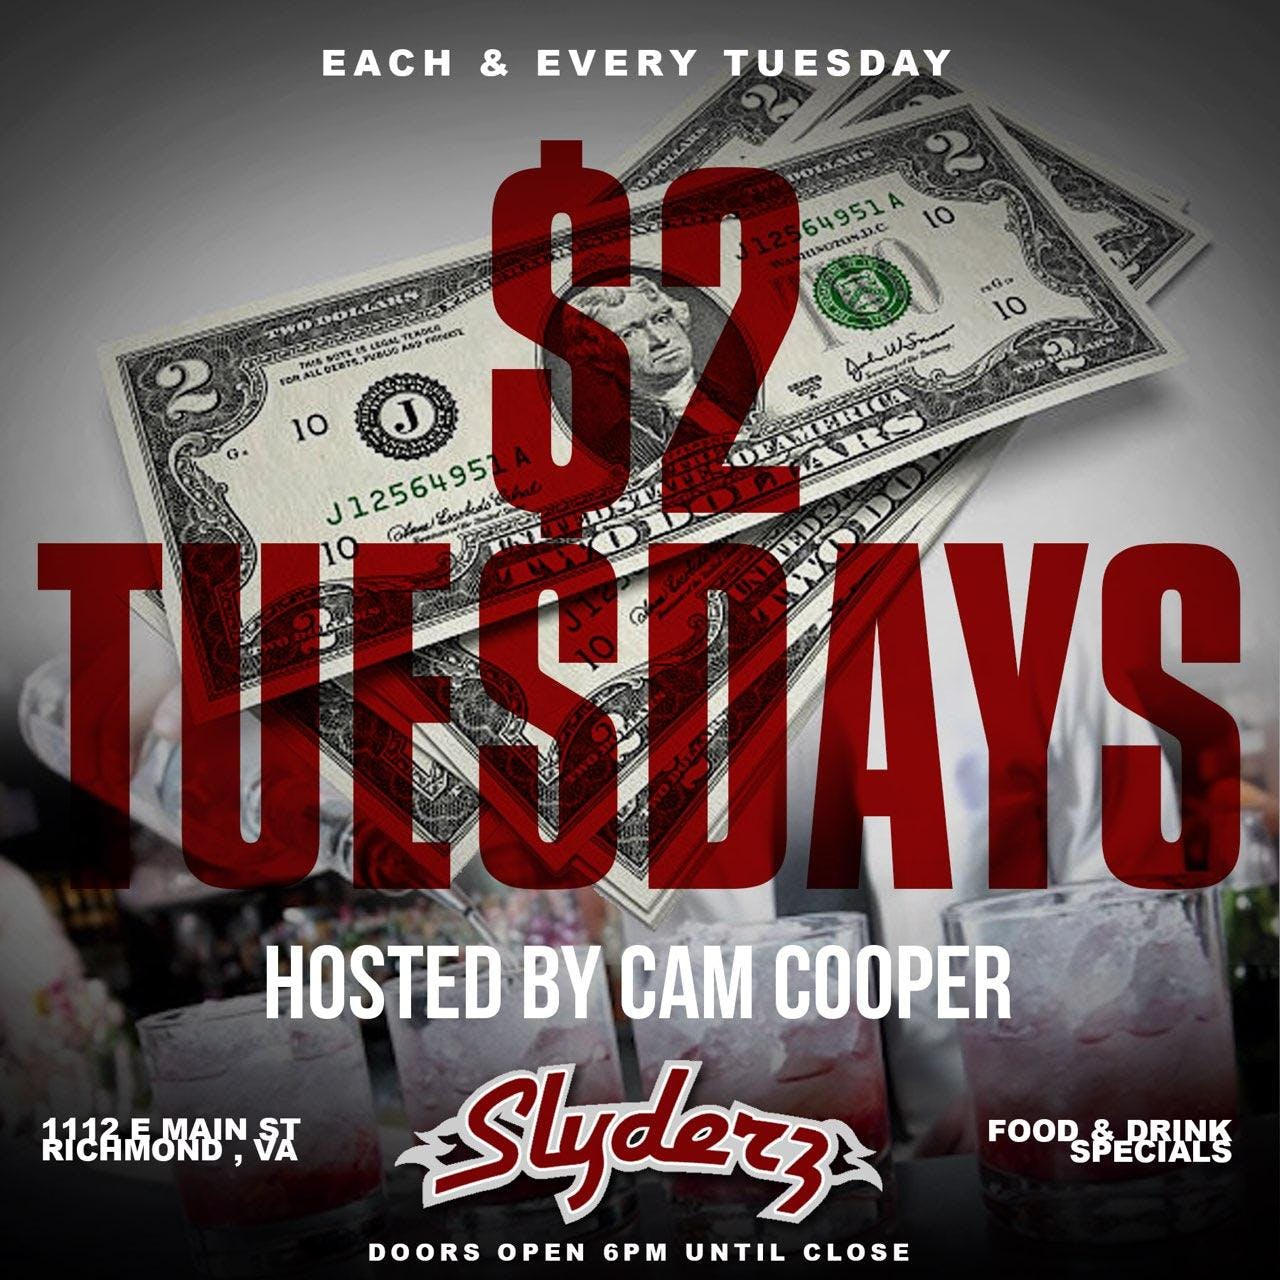 $2 Tuesdays At Slyderz Bar & Grill